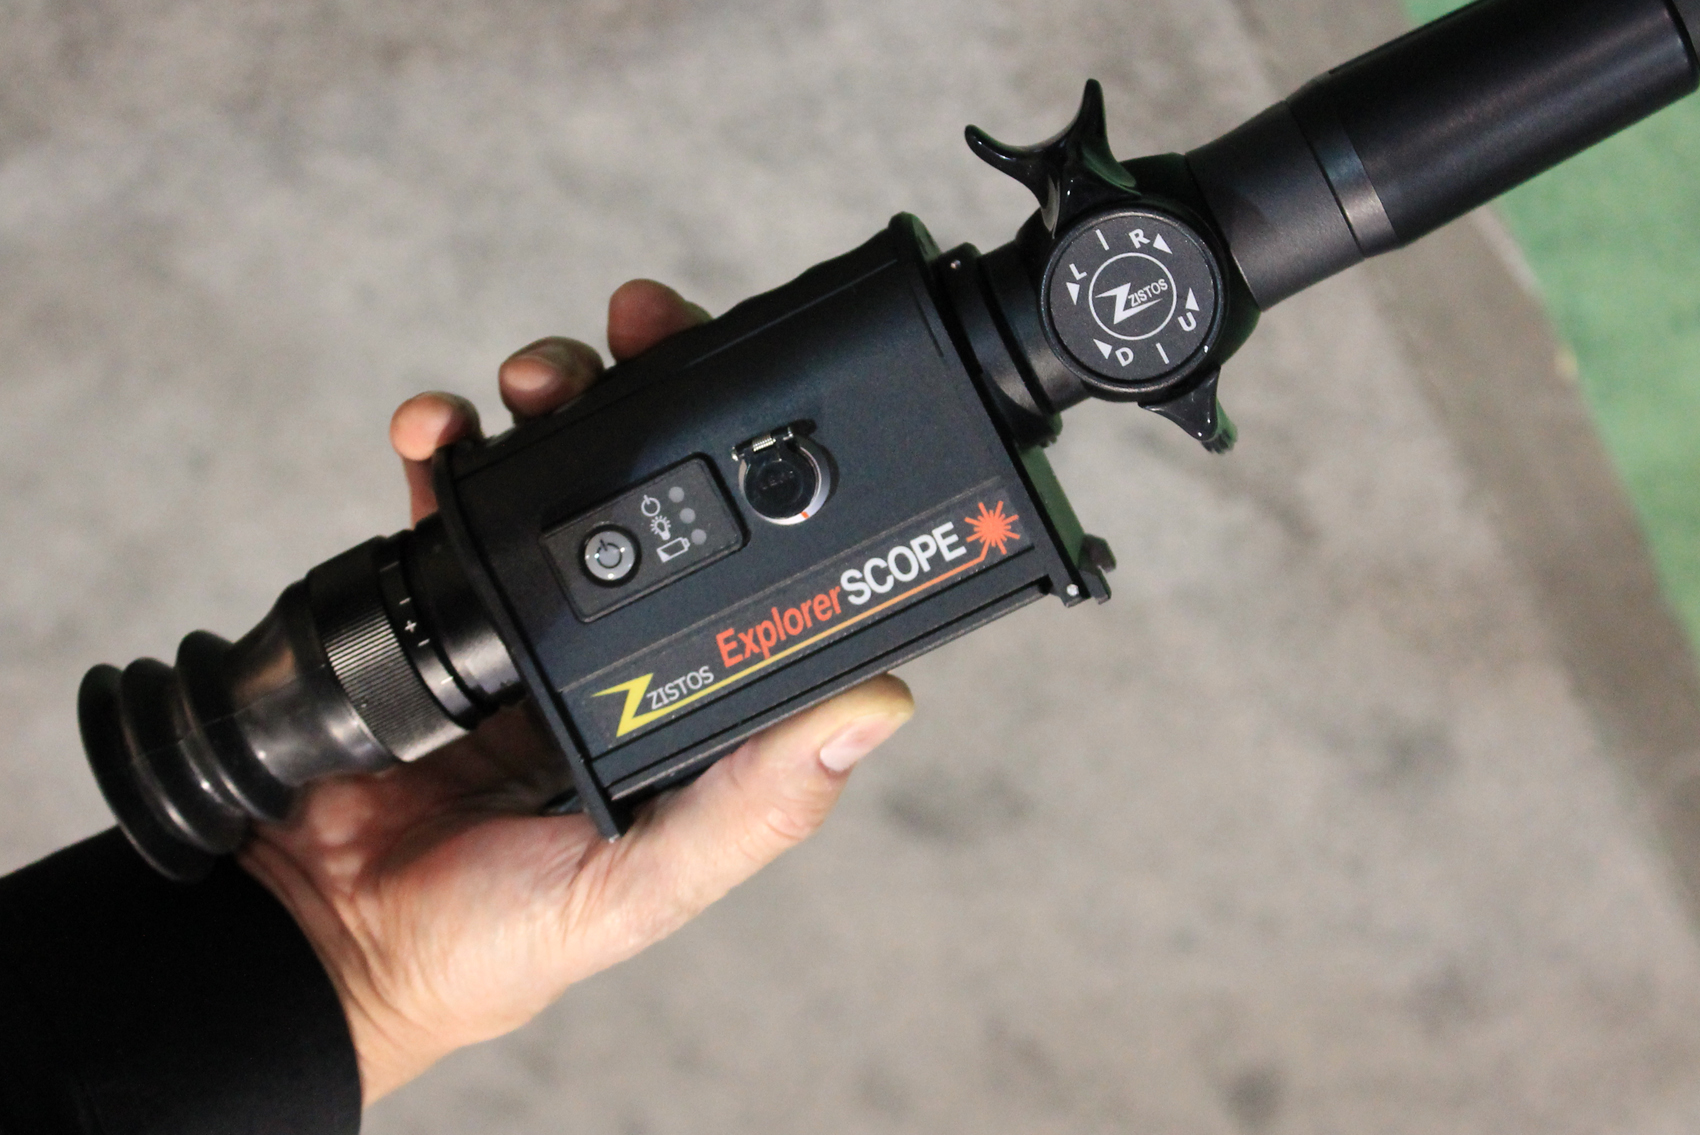 Zistos StealthSCOPE 2